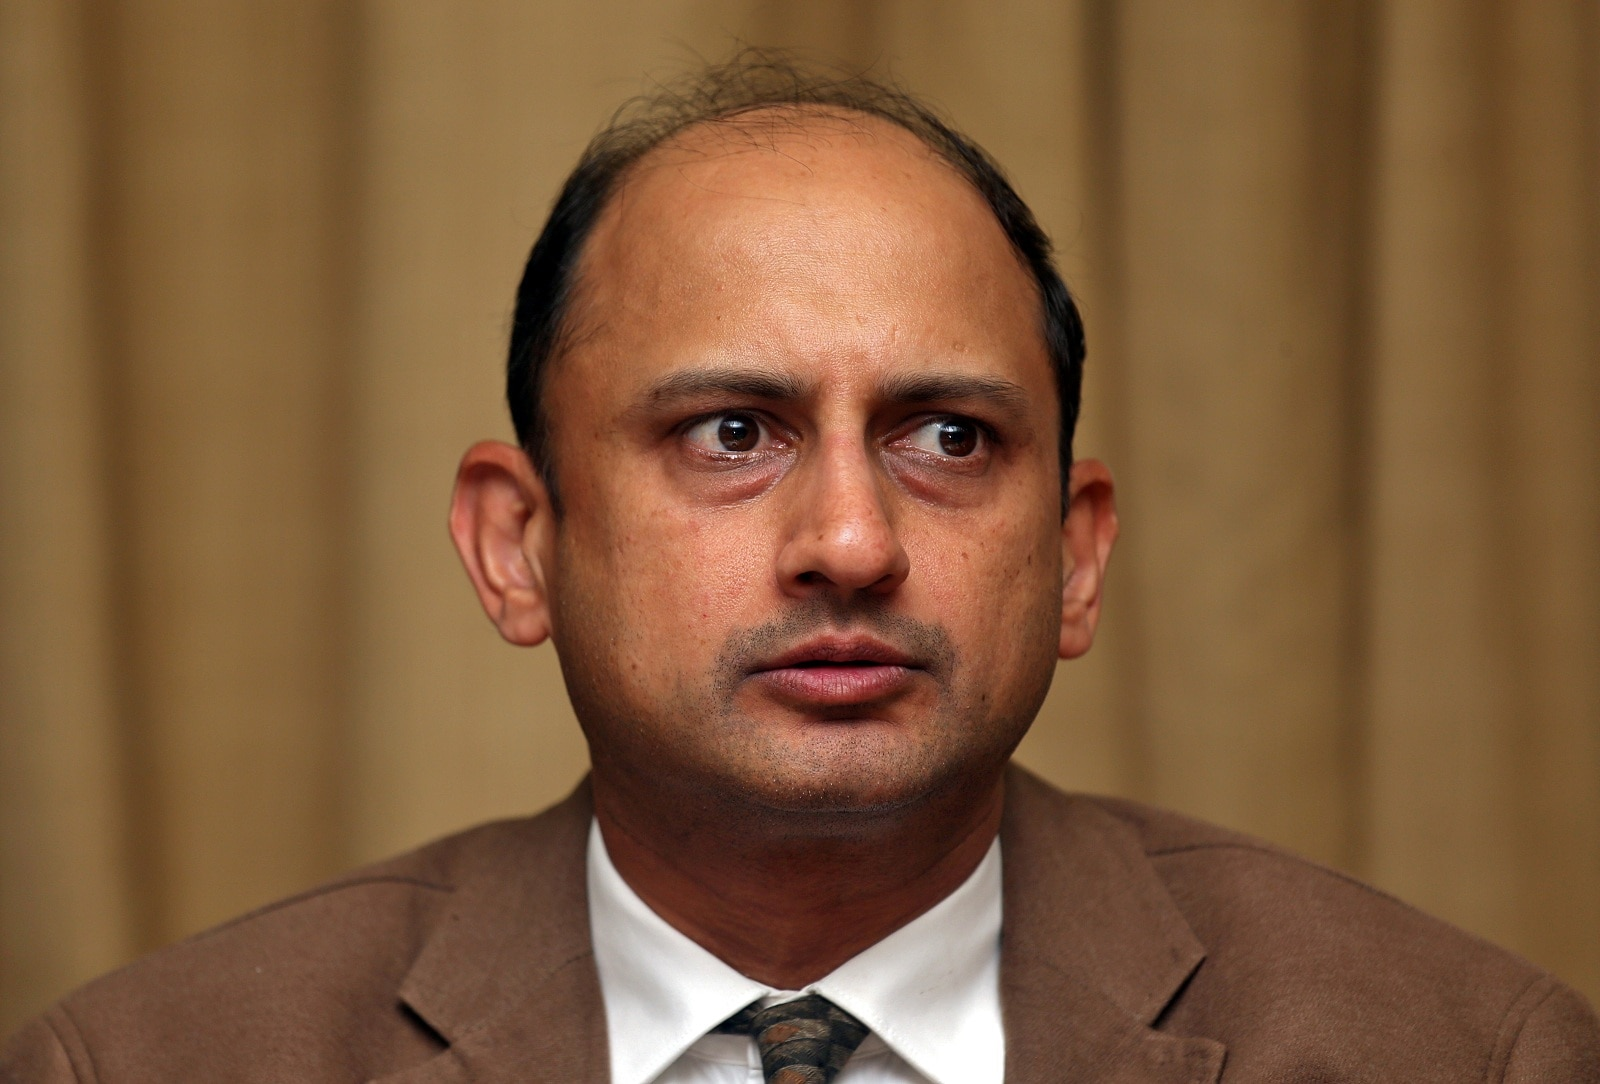 10. Viral Acharya's Parting Message: Flagging the perils of high government debt, outgoing RBI Deputy Governor Viral Acharya has pitched for